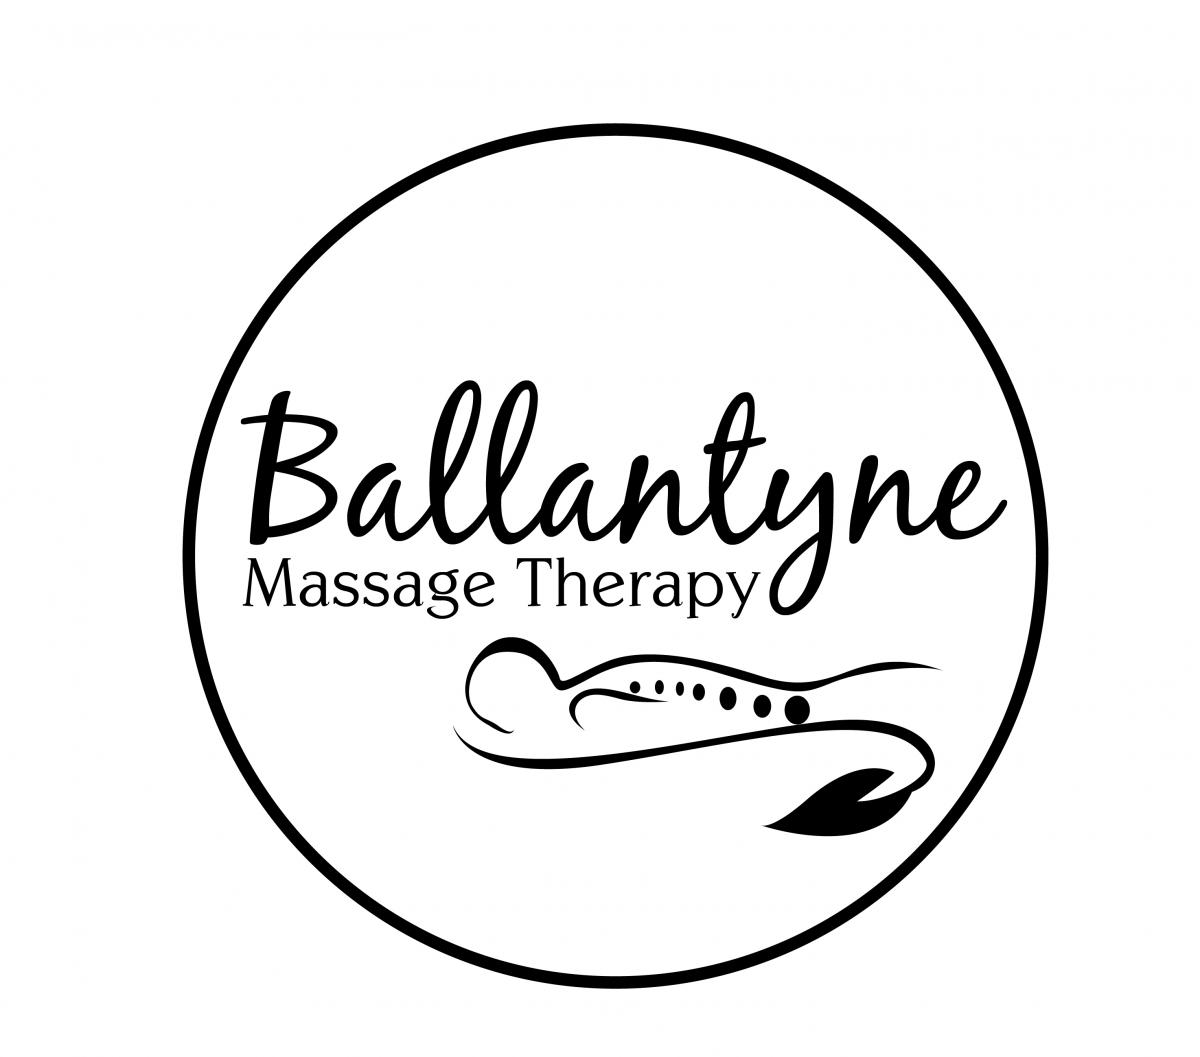 Ballantyne Massage Therapy logo